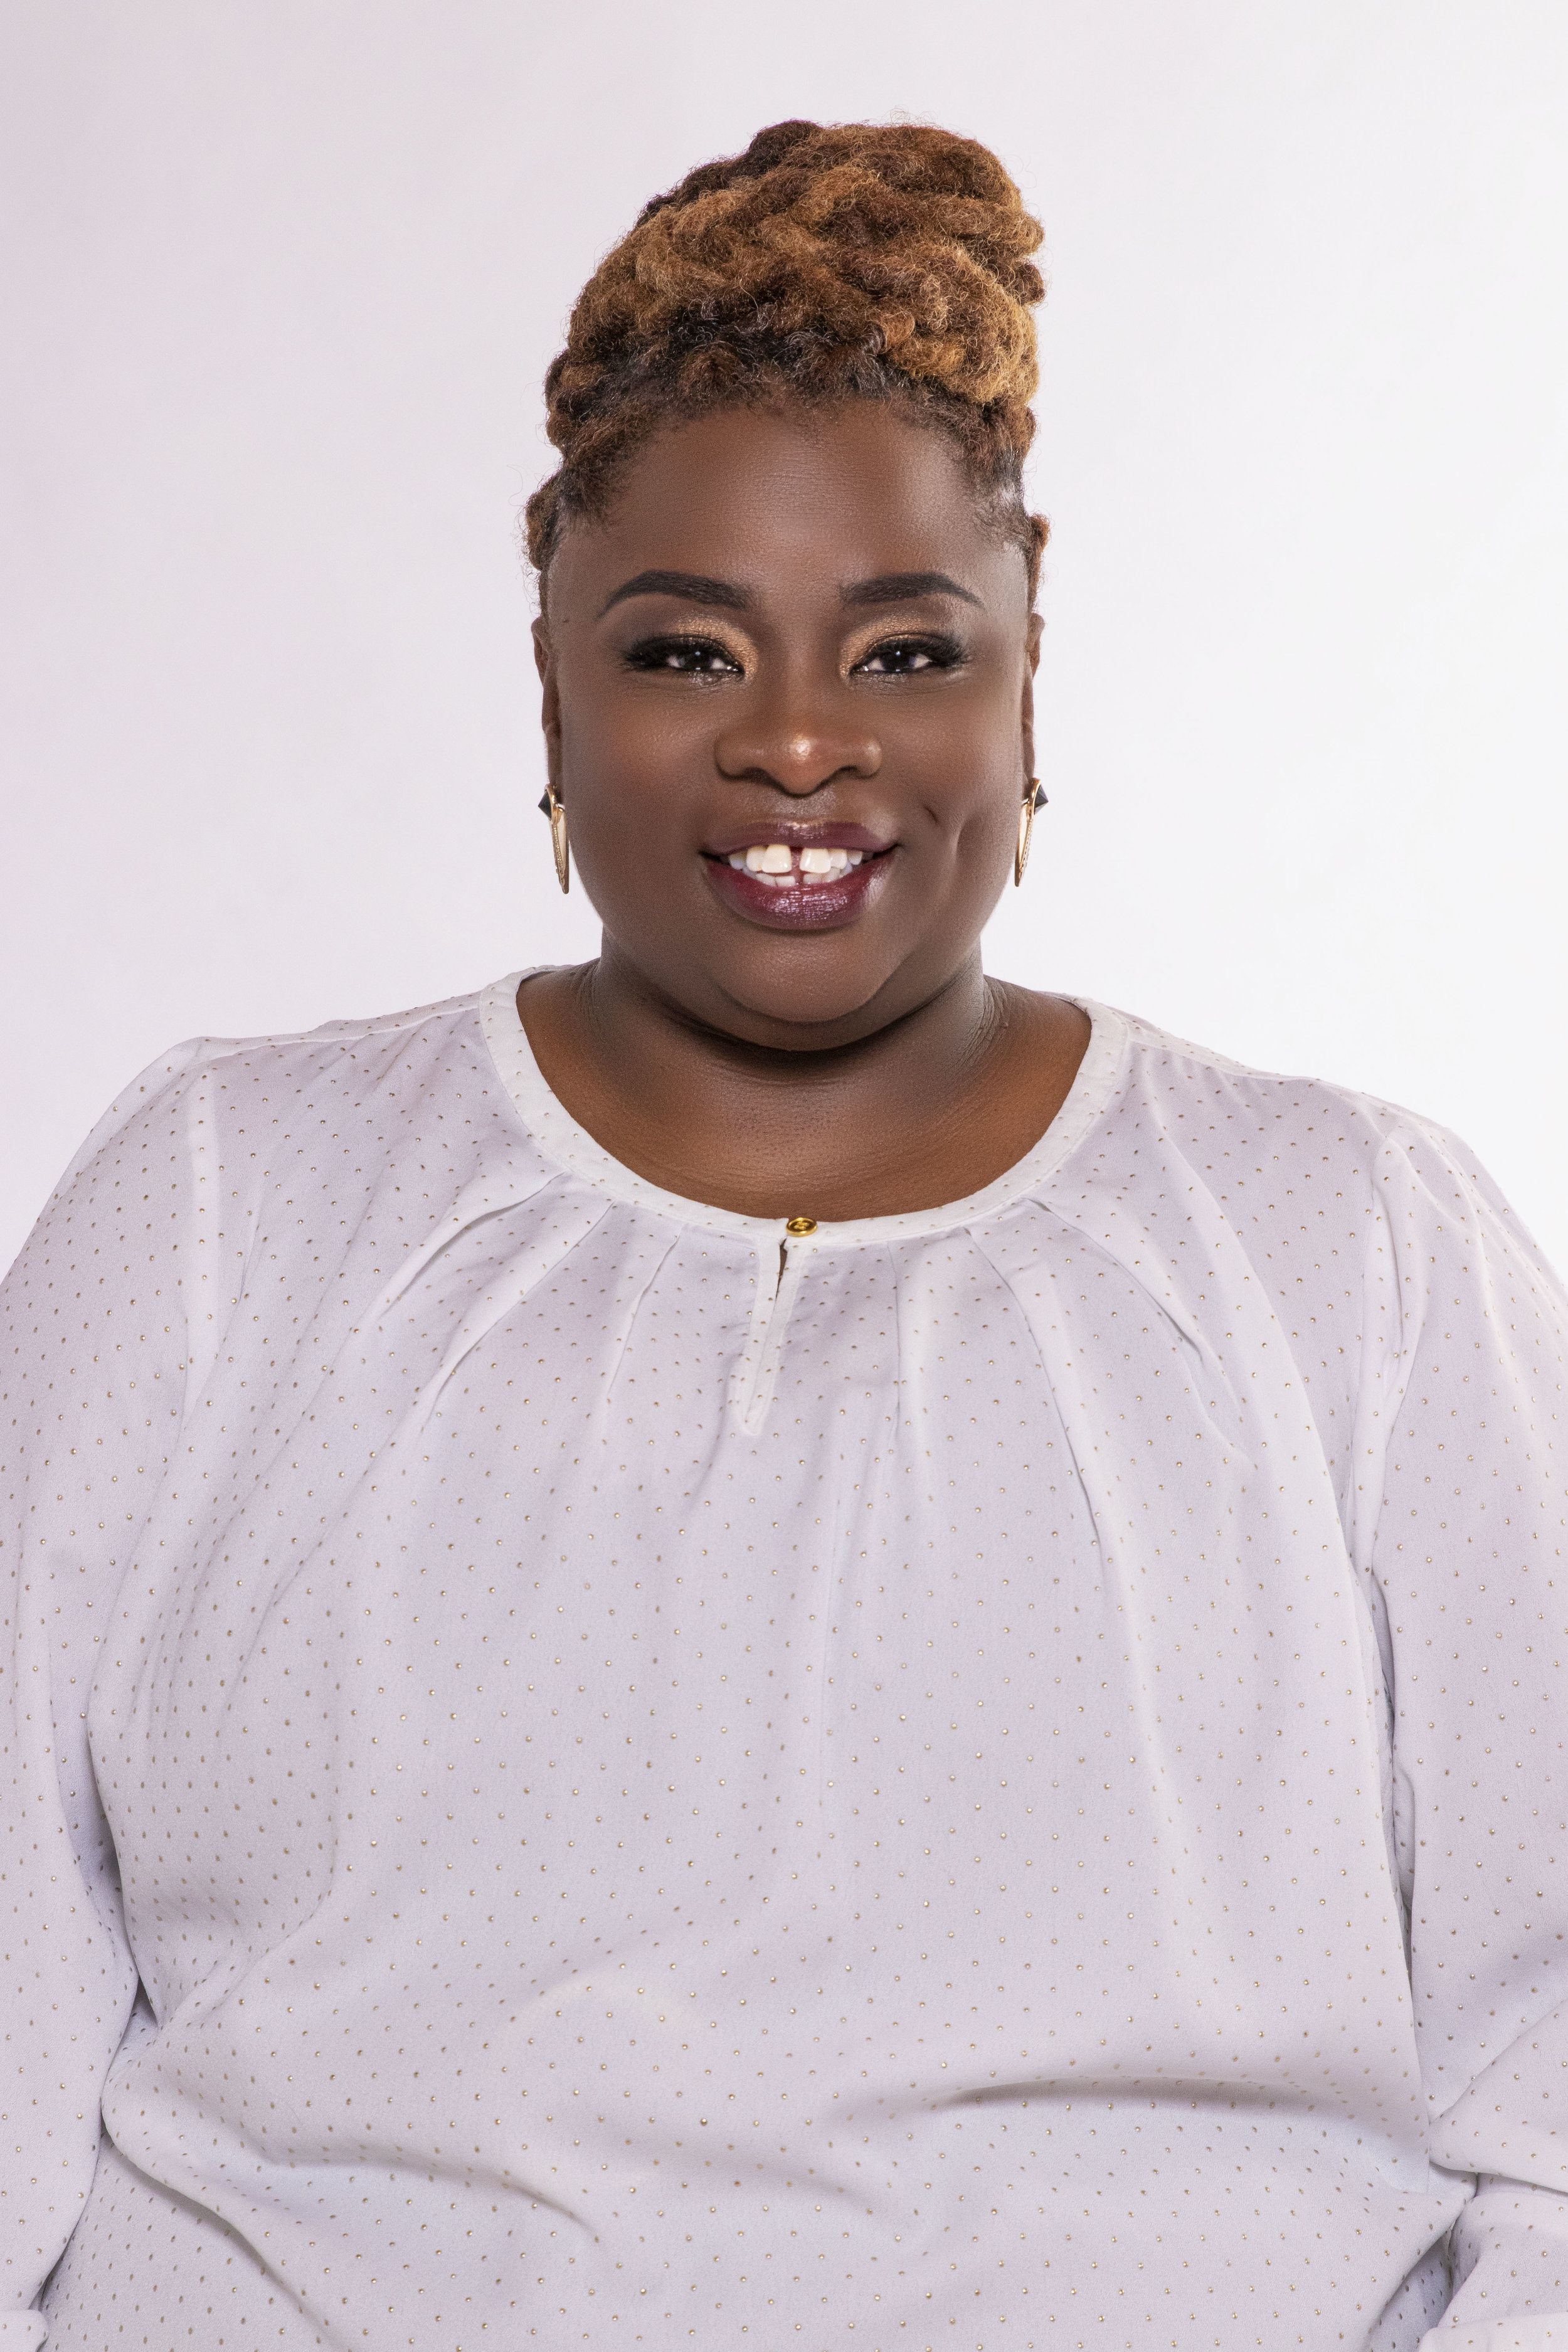 Tameka Brewington, owner and therapist at Real Talk Counseling in Charlotte, NC